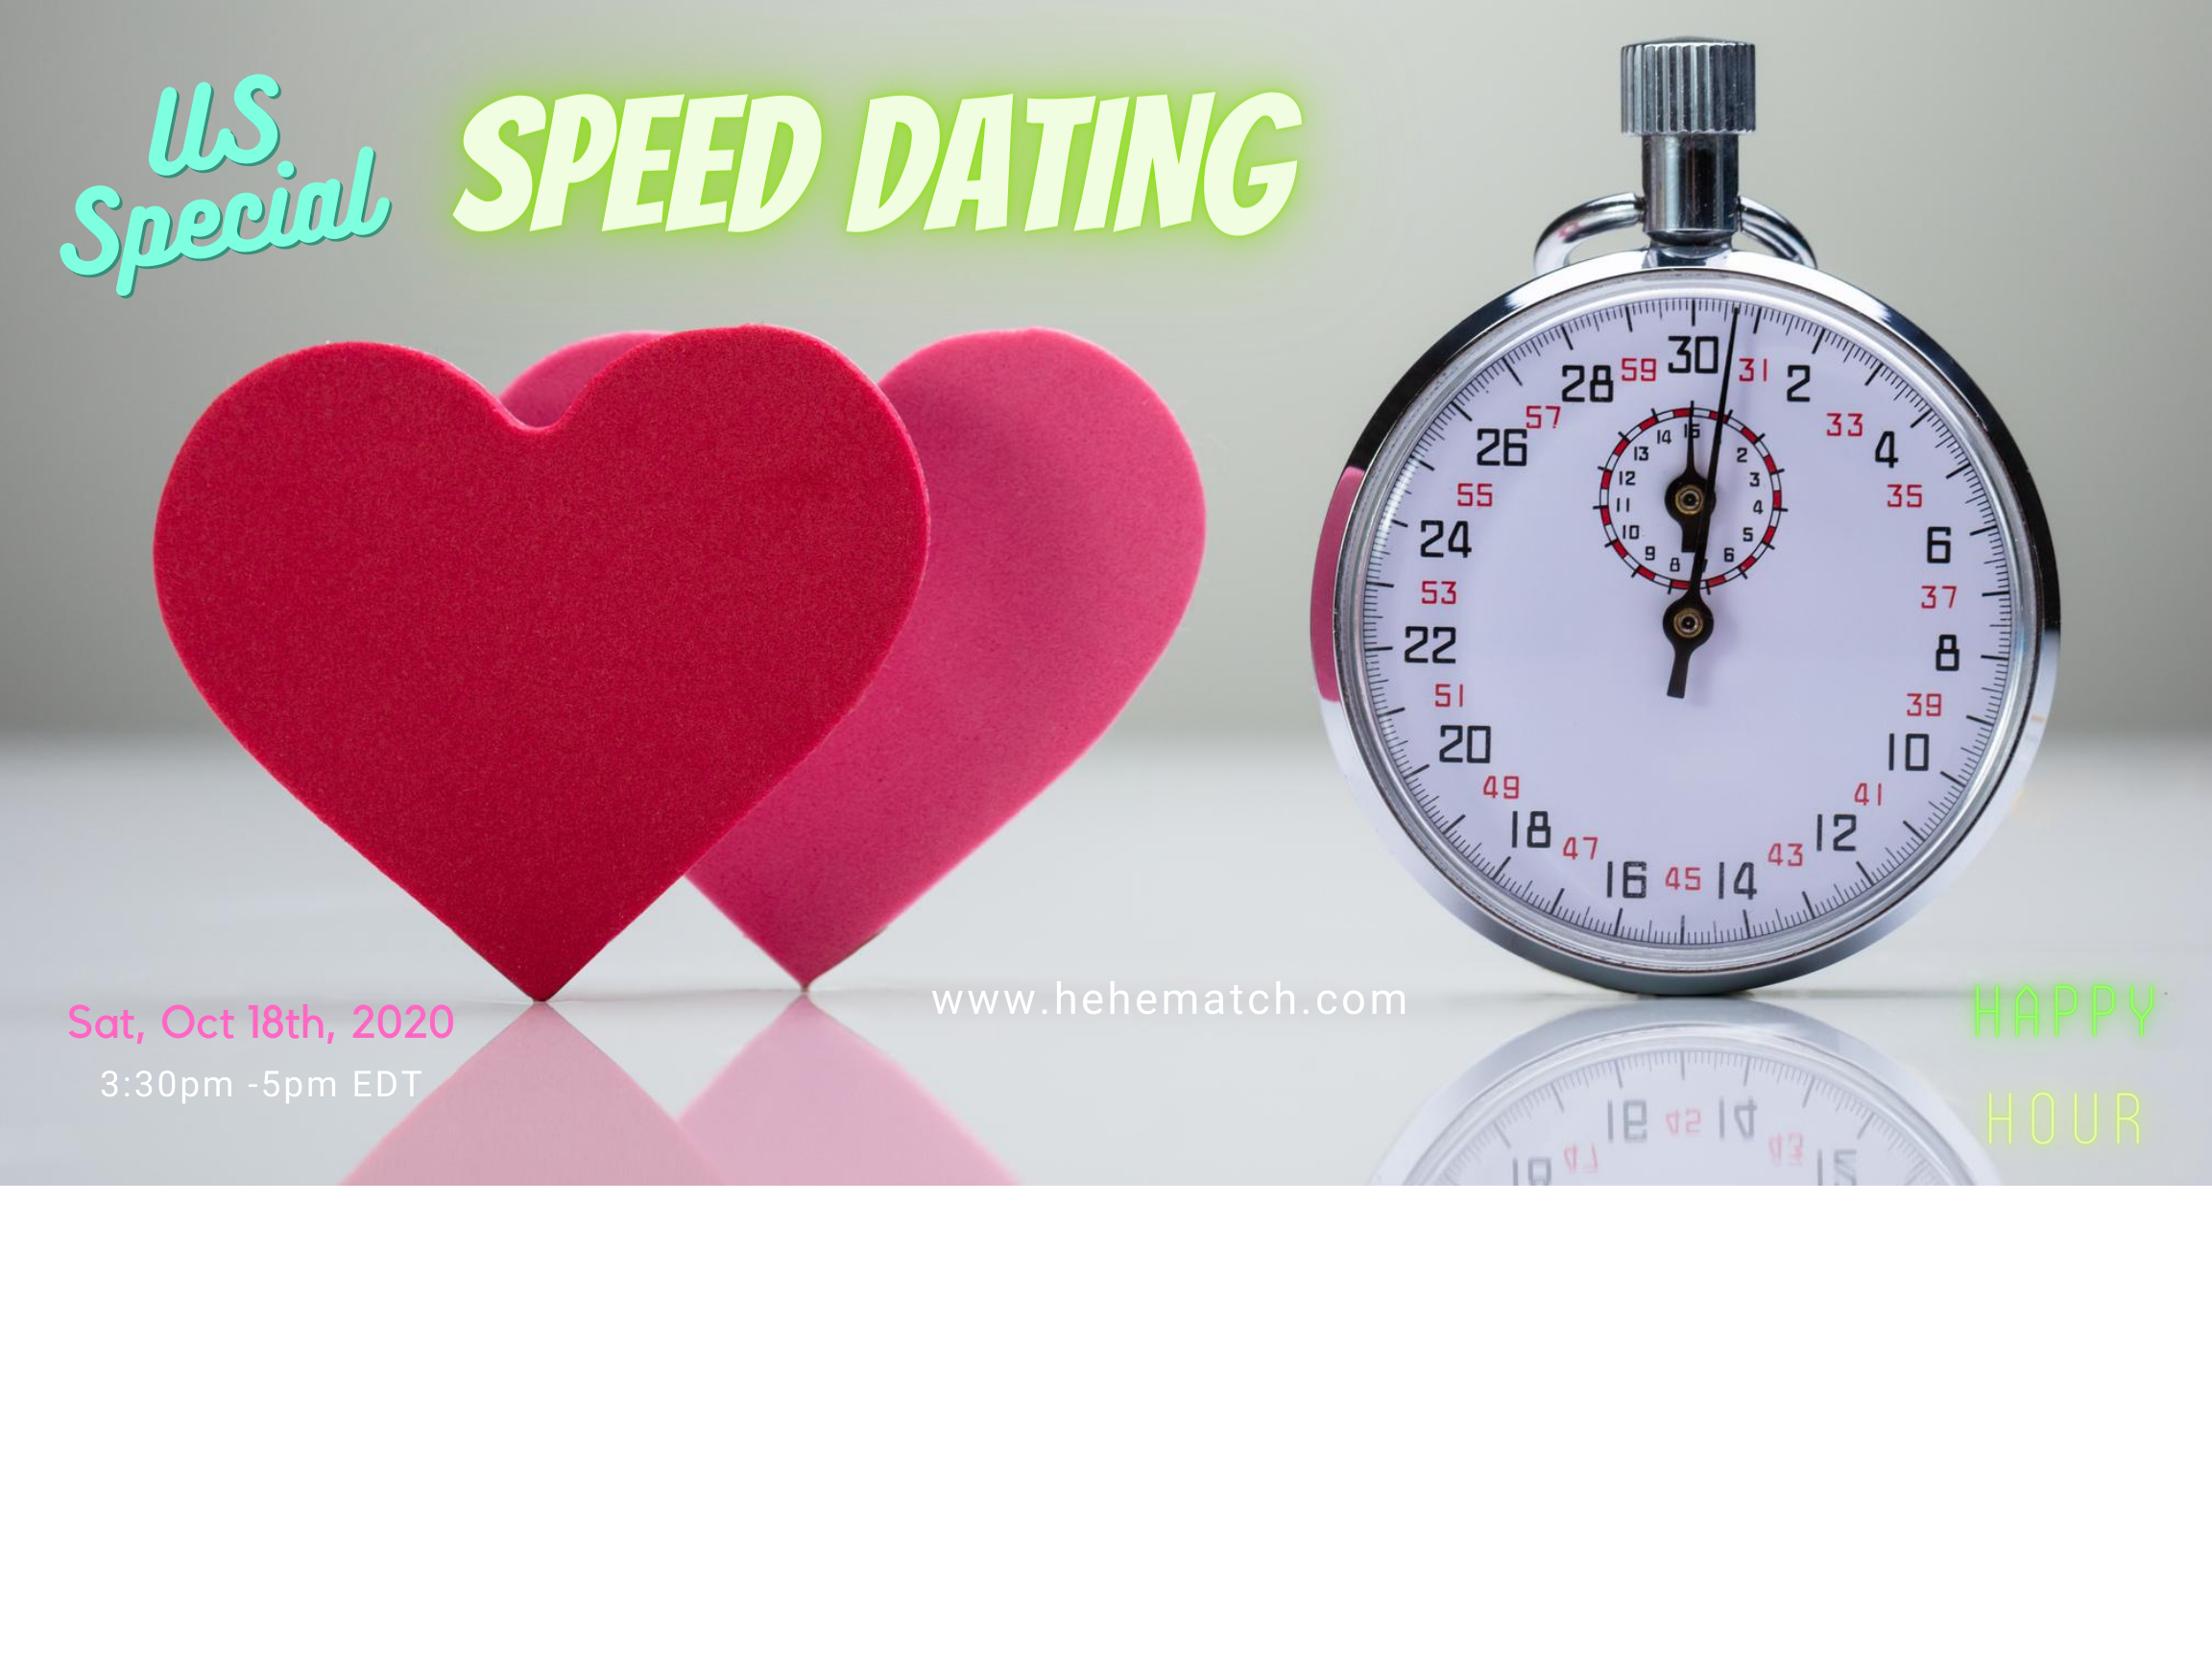 Speed Dating - (US special - 6/8)